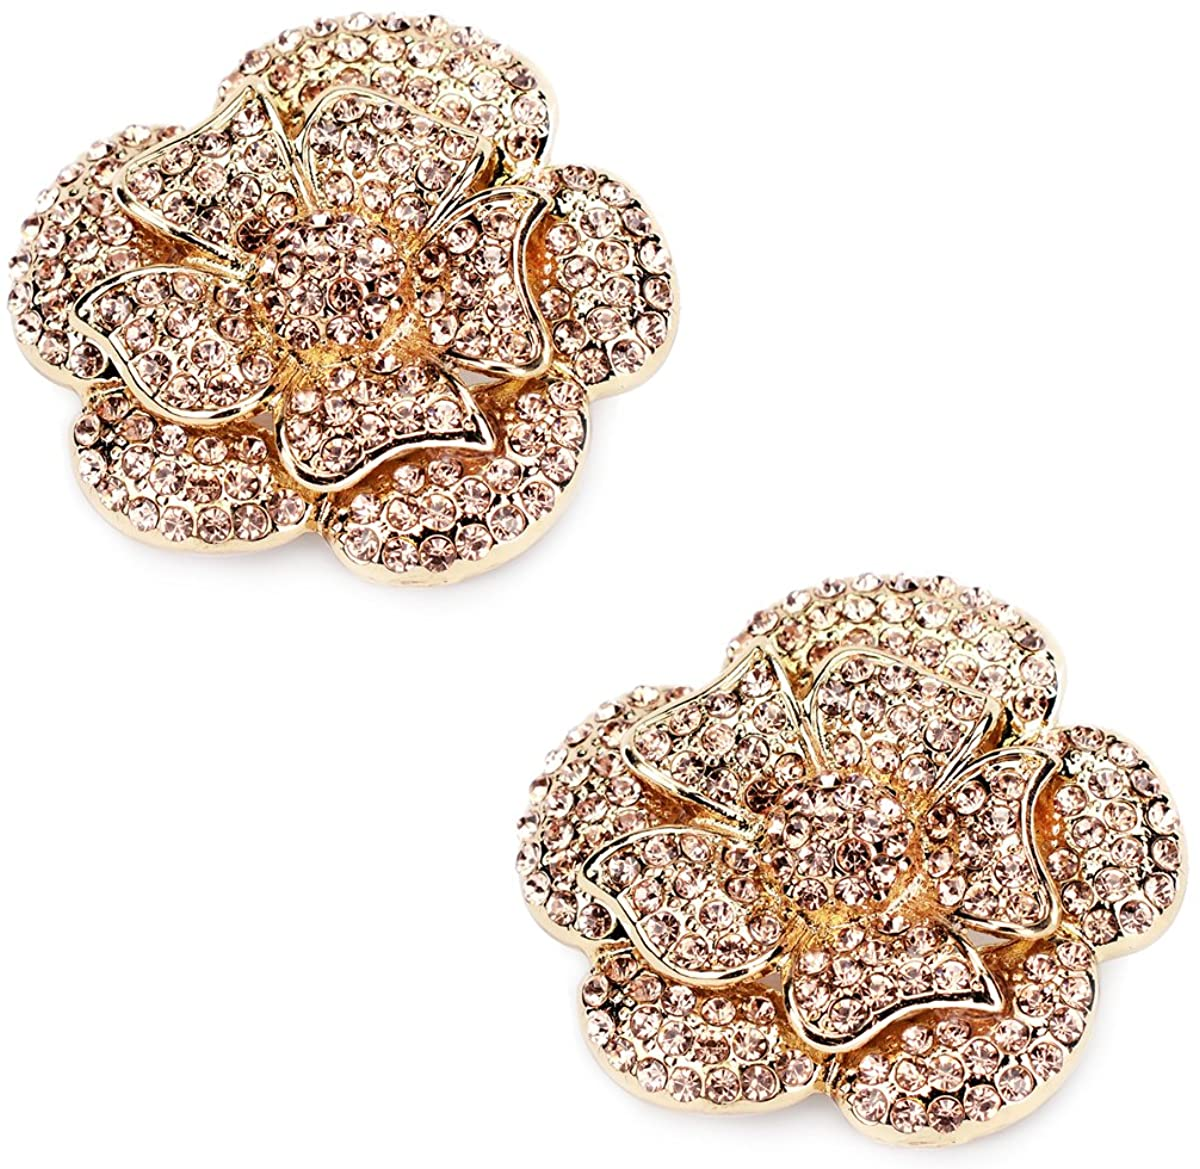 ElegantPark Fashion Shoe Clips for Pumps Pearl Rhinestone Flower Crystal Party Wedding Shoe Accessories Clips